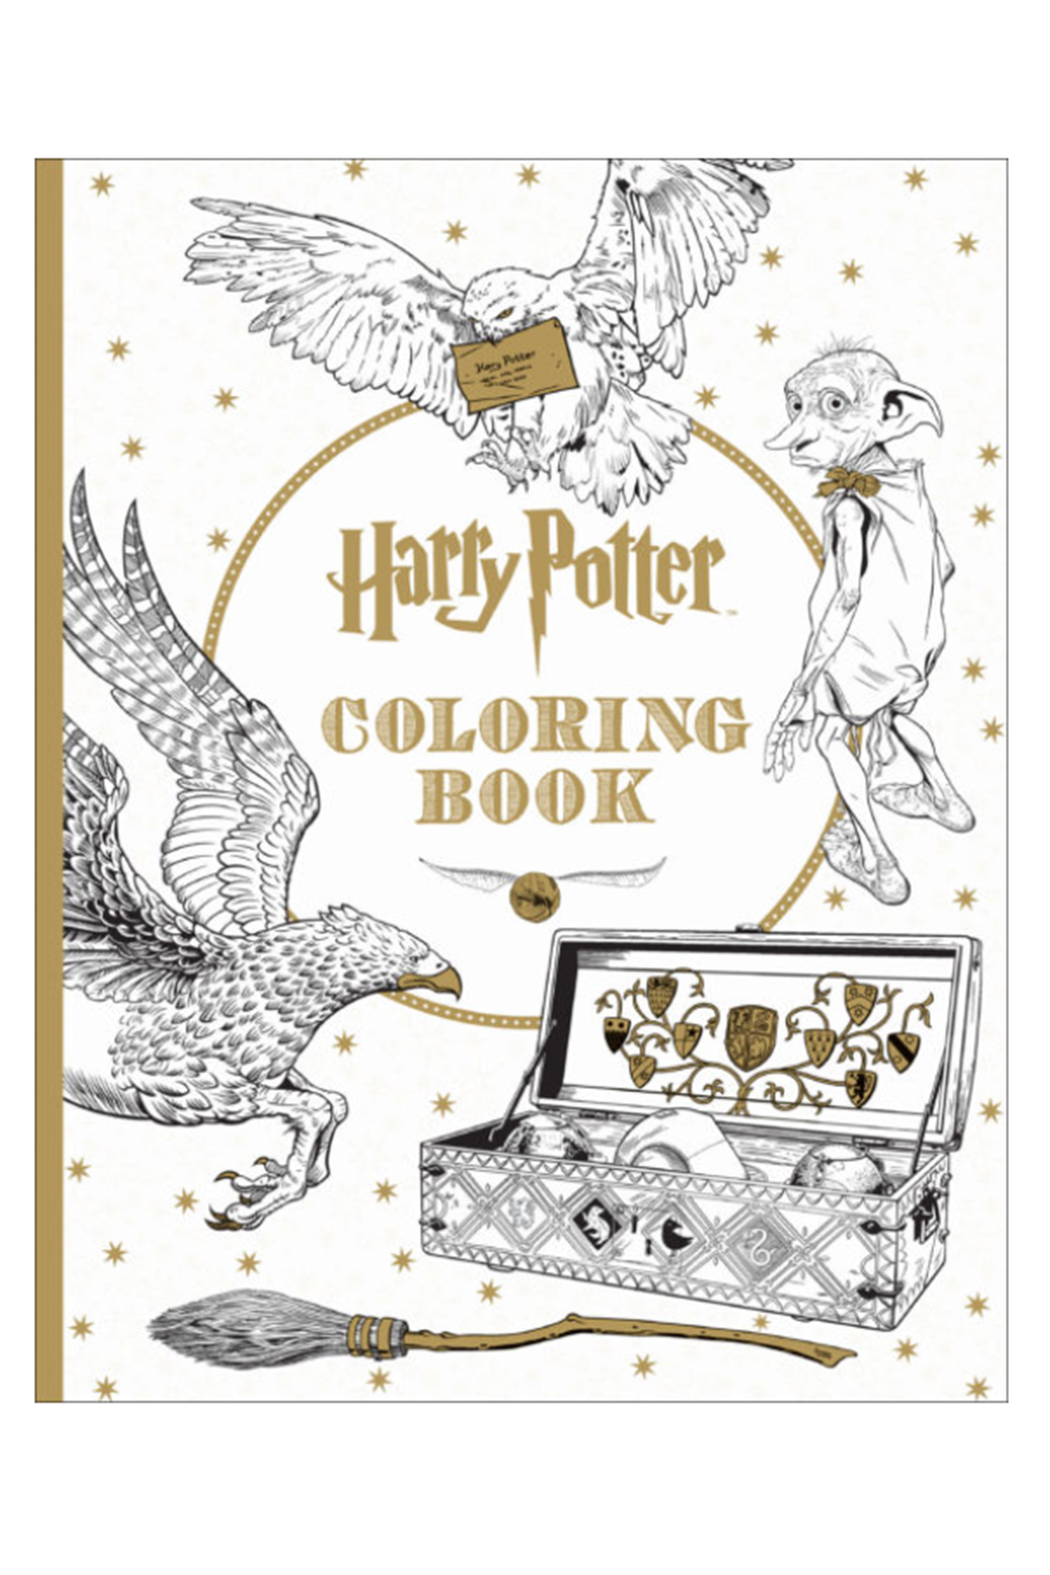 Scholastic Harry Potter Coloring Book - Main Image